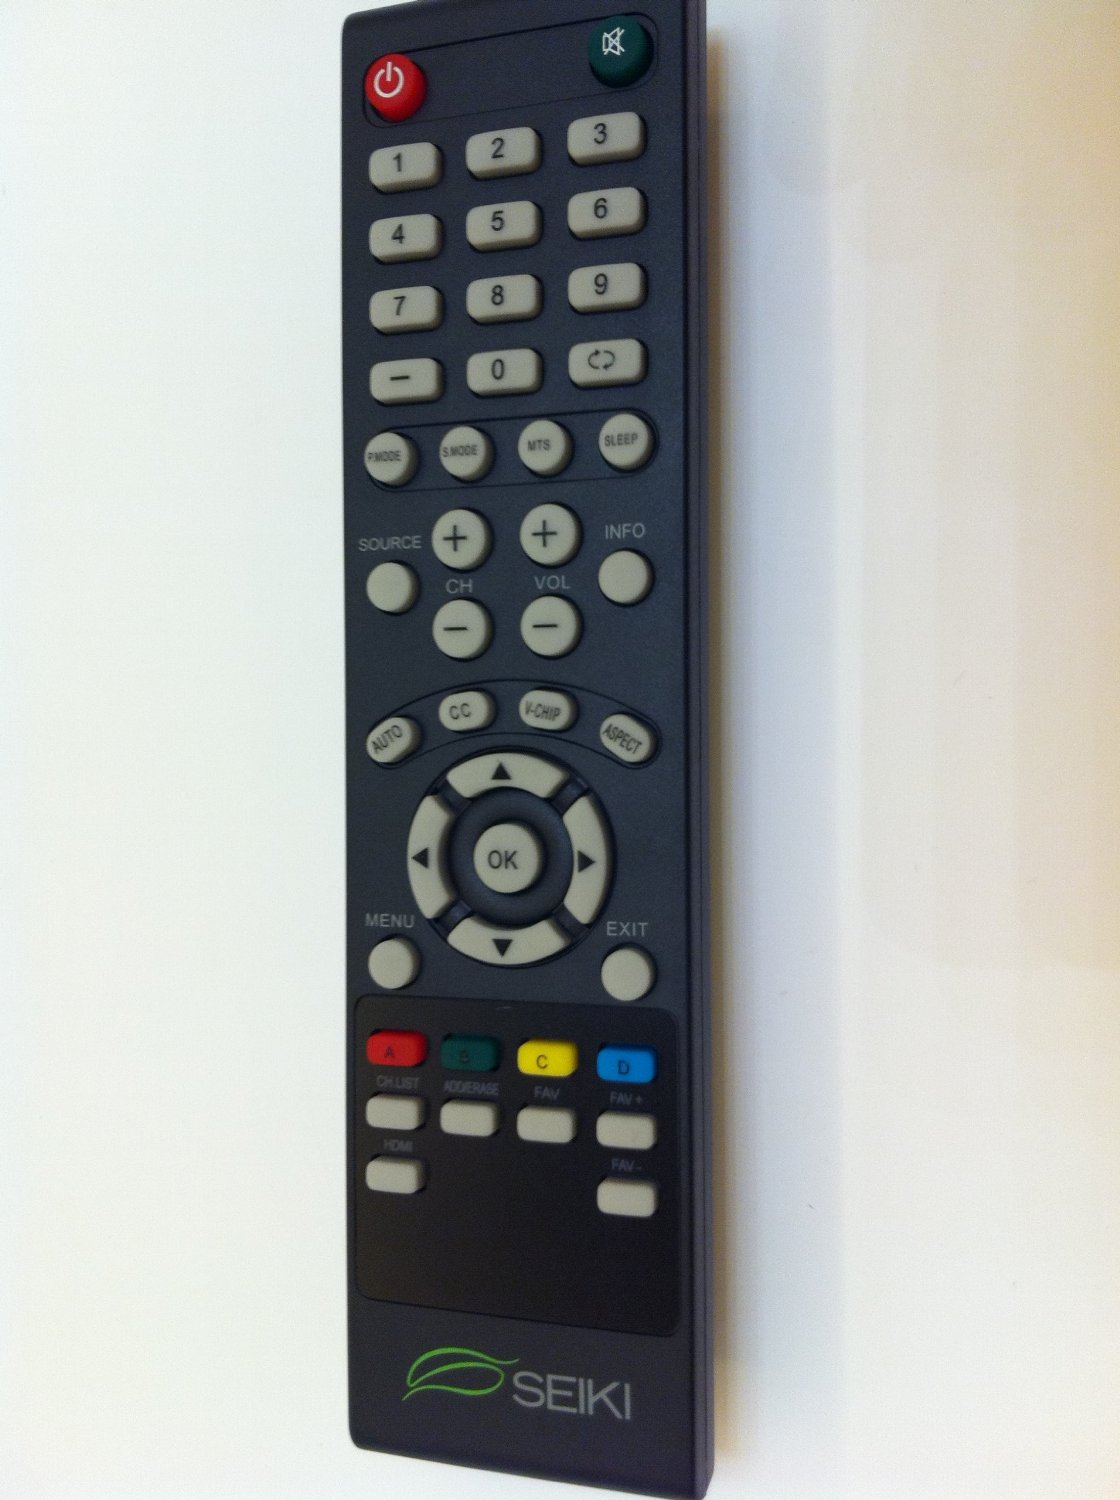 Brand NEW original seiki SEIKI TV Remote for SEIKI LC-32GC12F LC-46G68 SC552GS SC324FB SC32HT04 SE32HS01 SE65FY18 SE60GY24 SE65JY25 SE19HT01 SE40FY19 SE50UY04 LE-46GCA LE-55G77E SE39UY04 SE47FY19 LE-32SCL-C SE55UY04 SC22HY07 TV REMOTE----Original remote; do not any setting, only put into battery